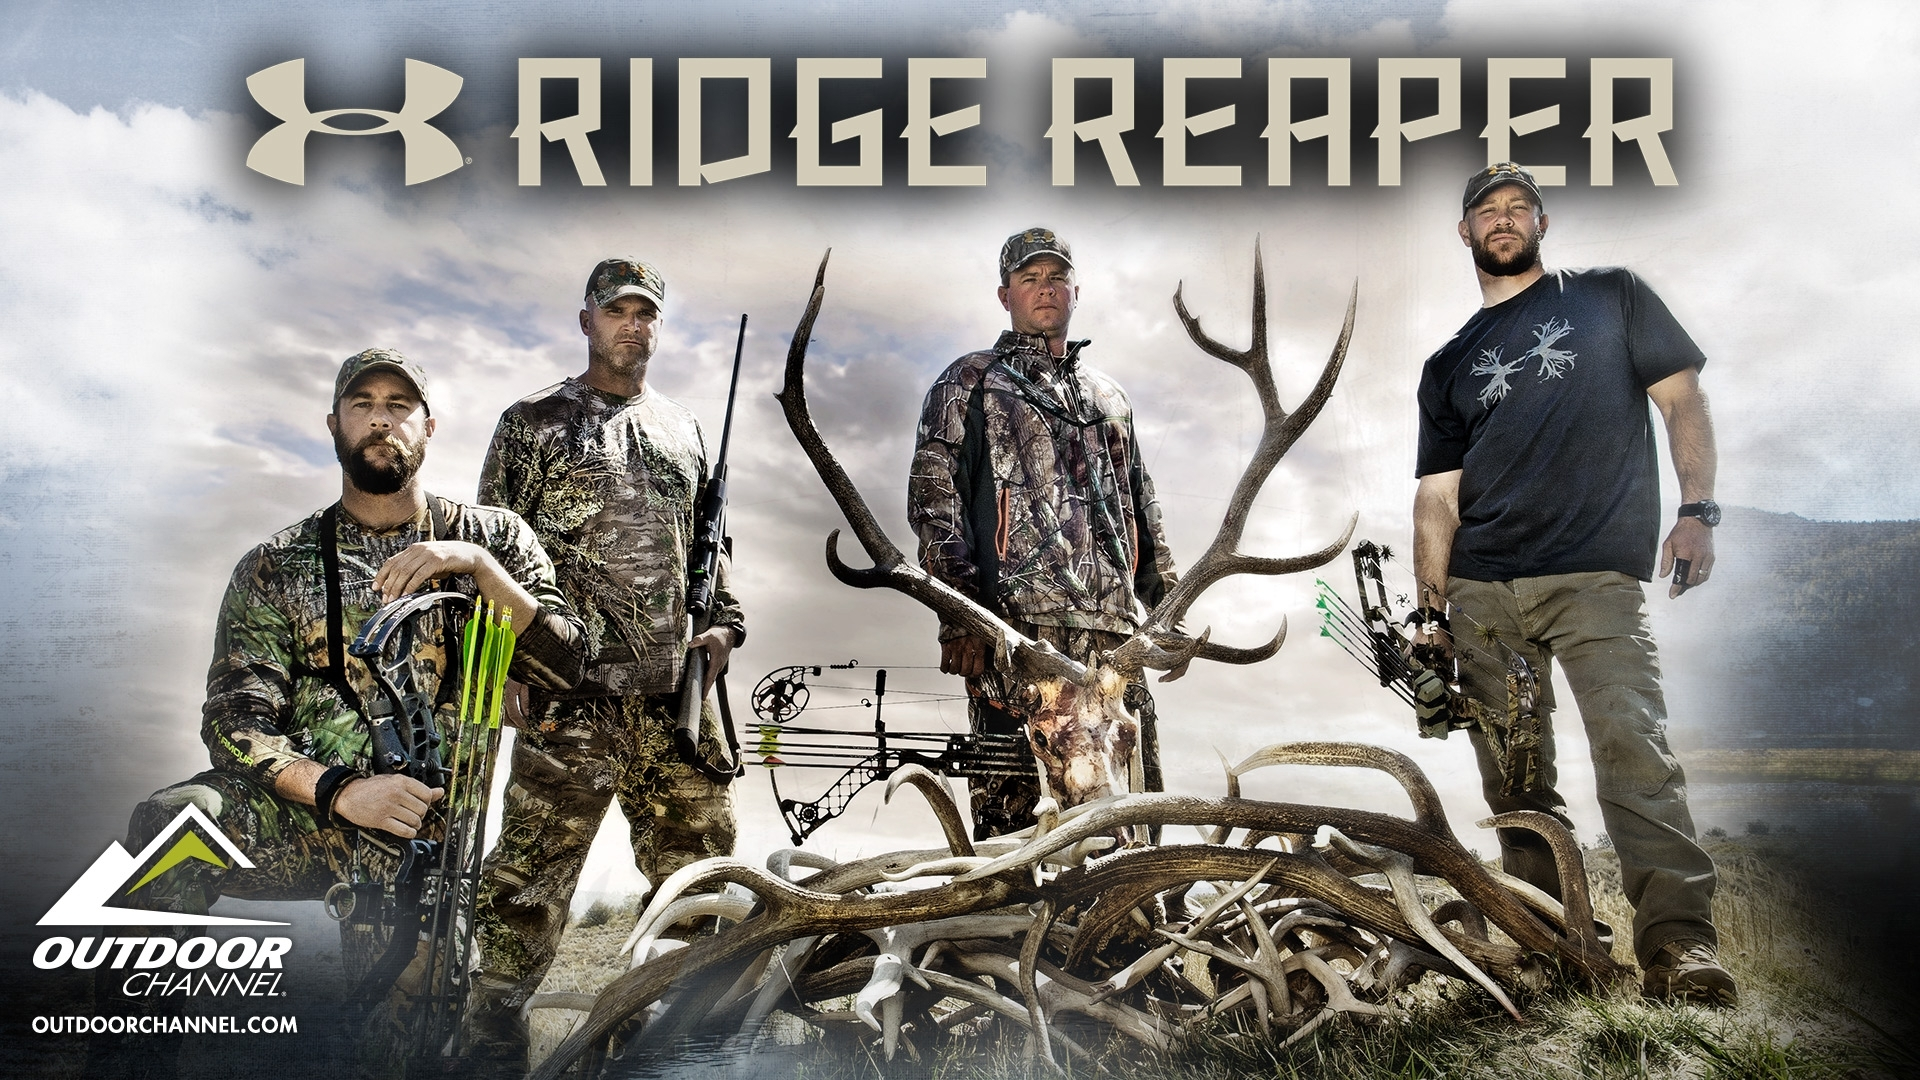 ridge reaper, under armour presents | outdoor channel